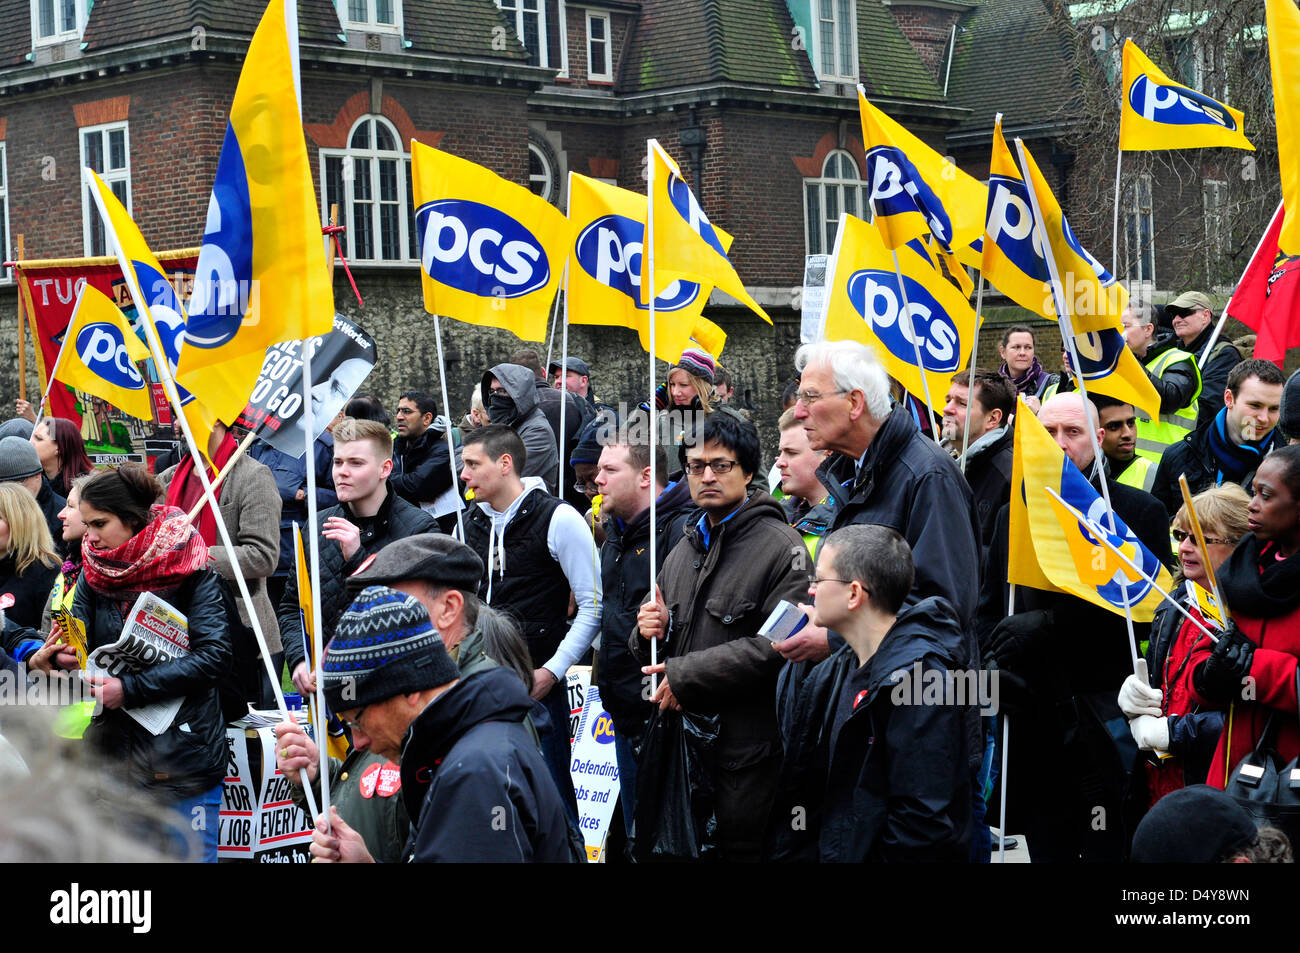 Civil servants on strike rally outside the parliament on budget day. - Stock Image